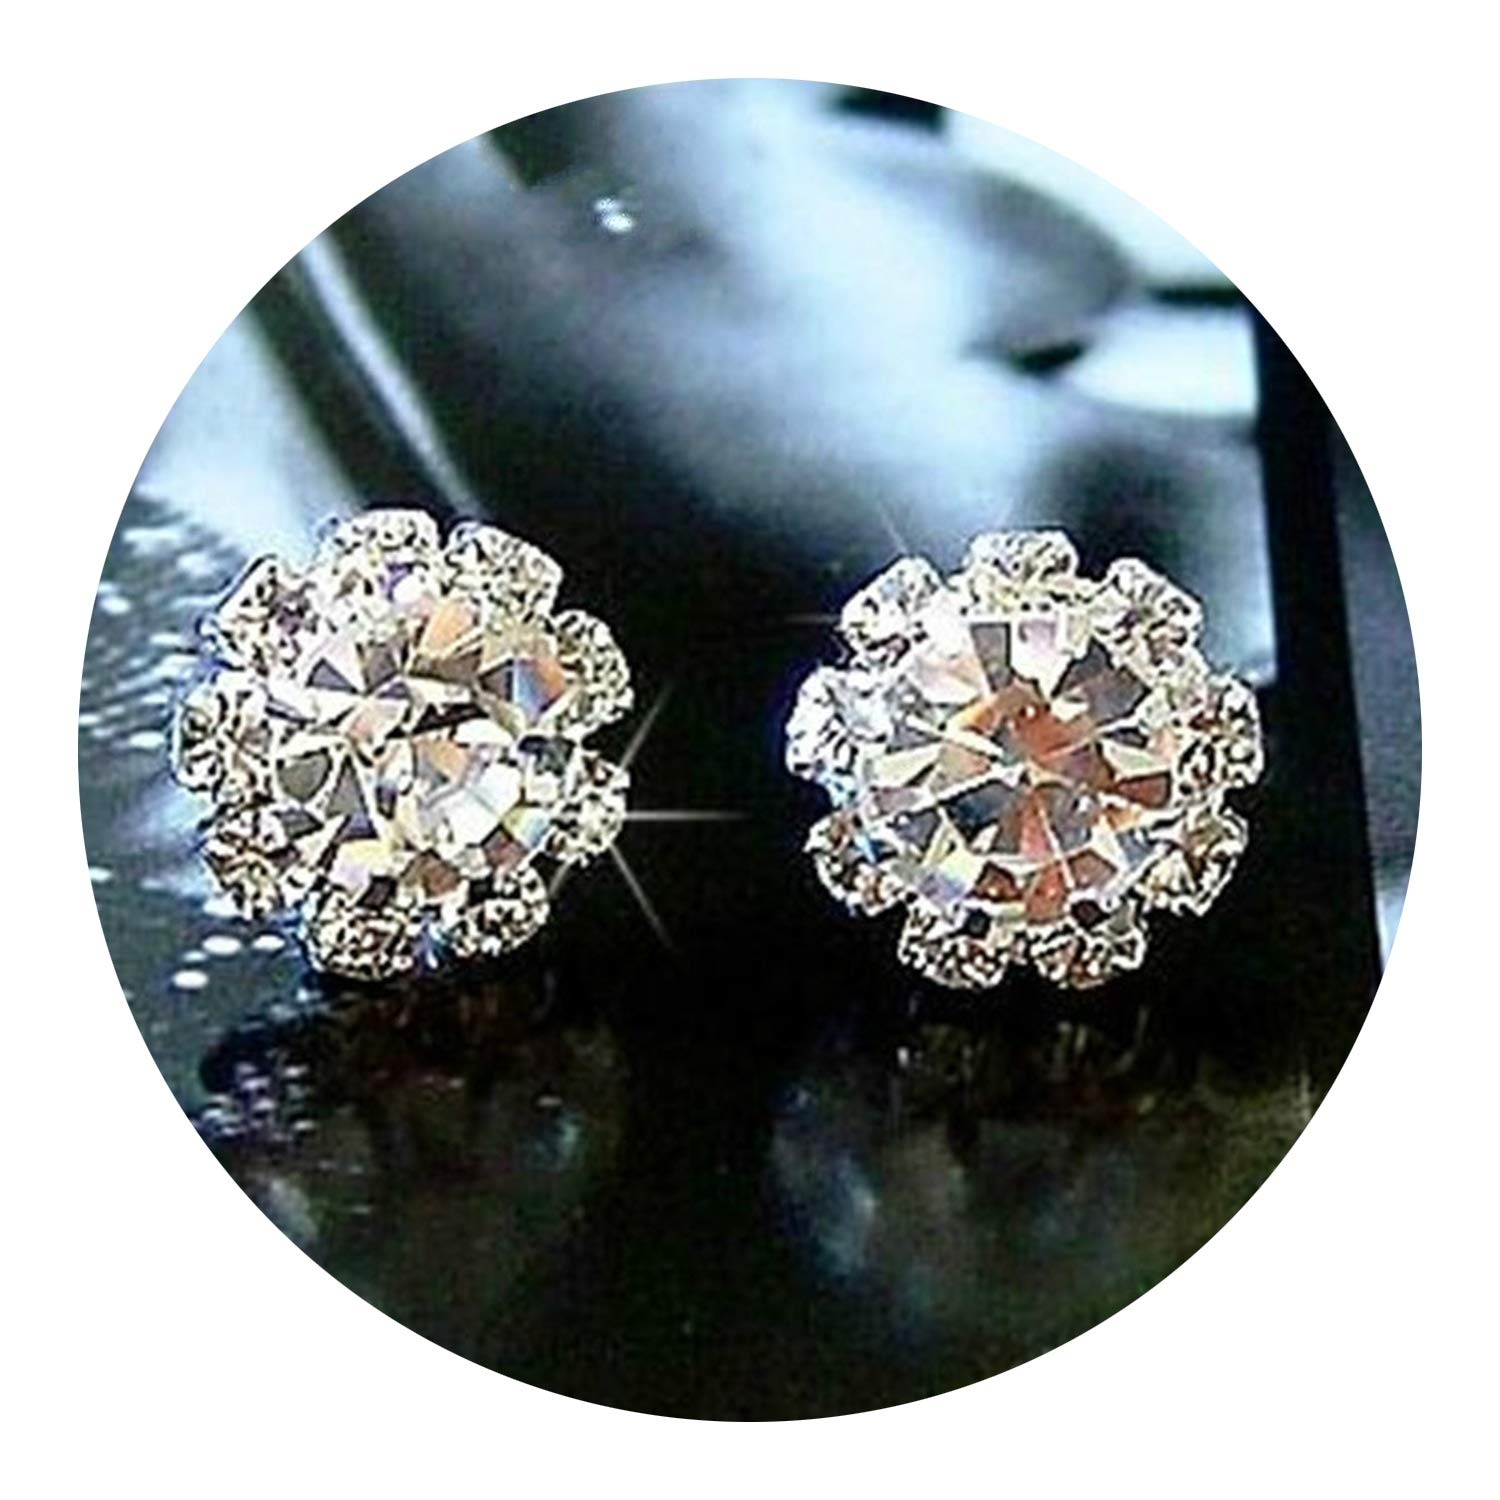 new fashion sparkling earrings sunflowers zircon imitation jewelry accessories wedding gift for girls